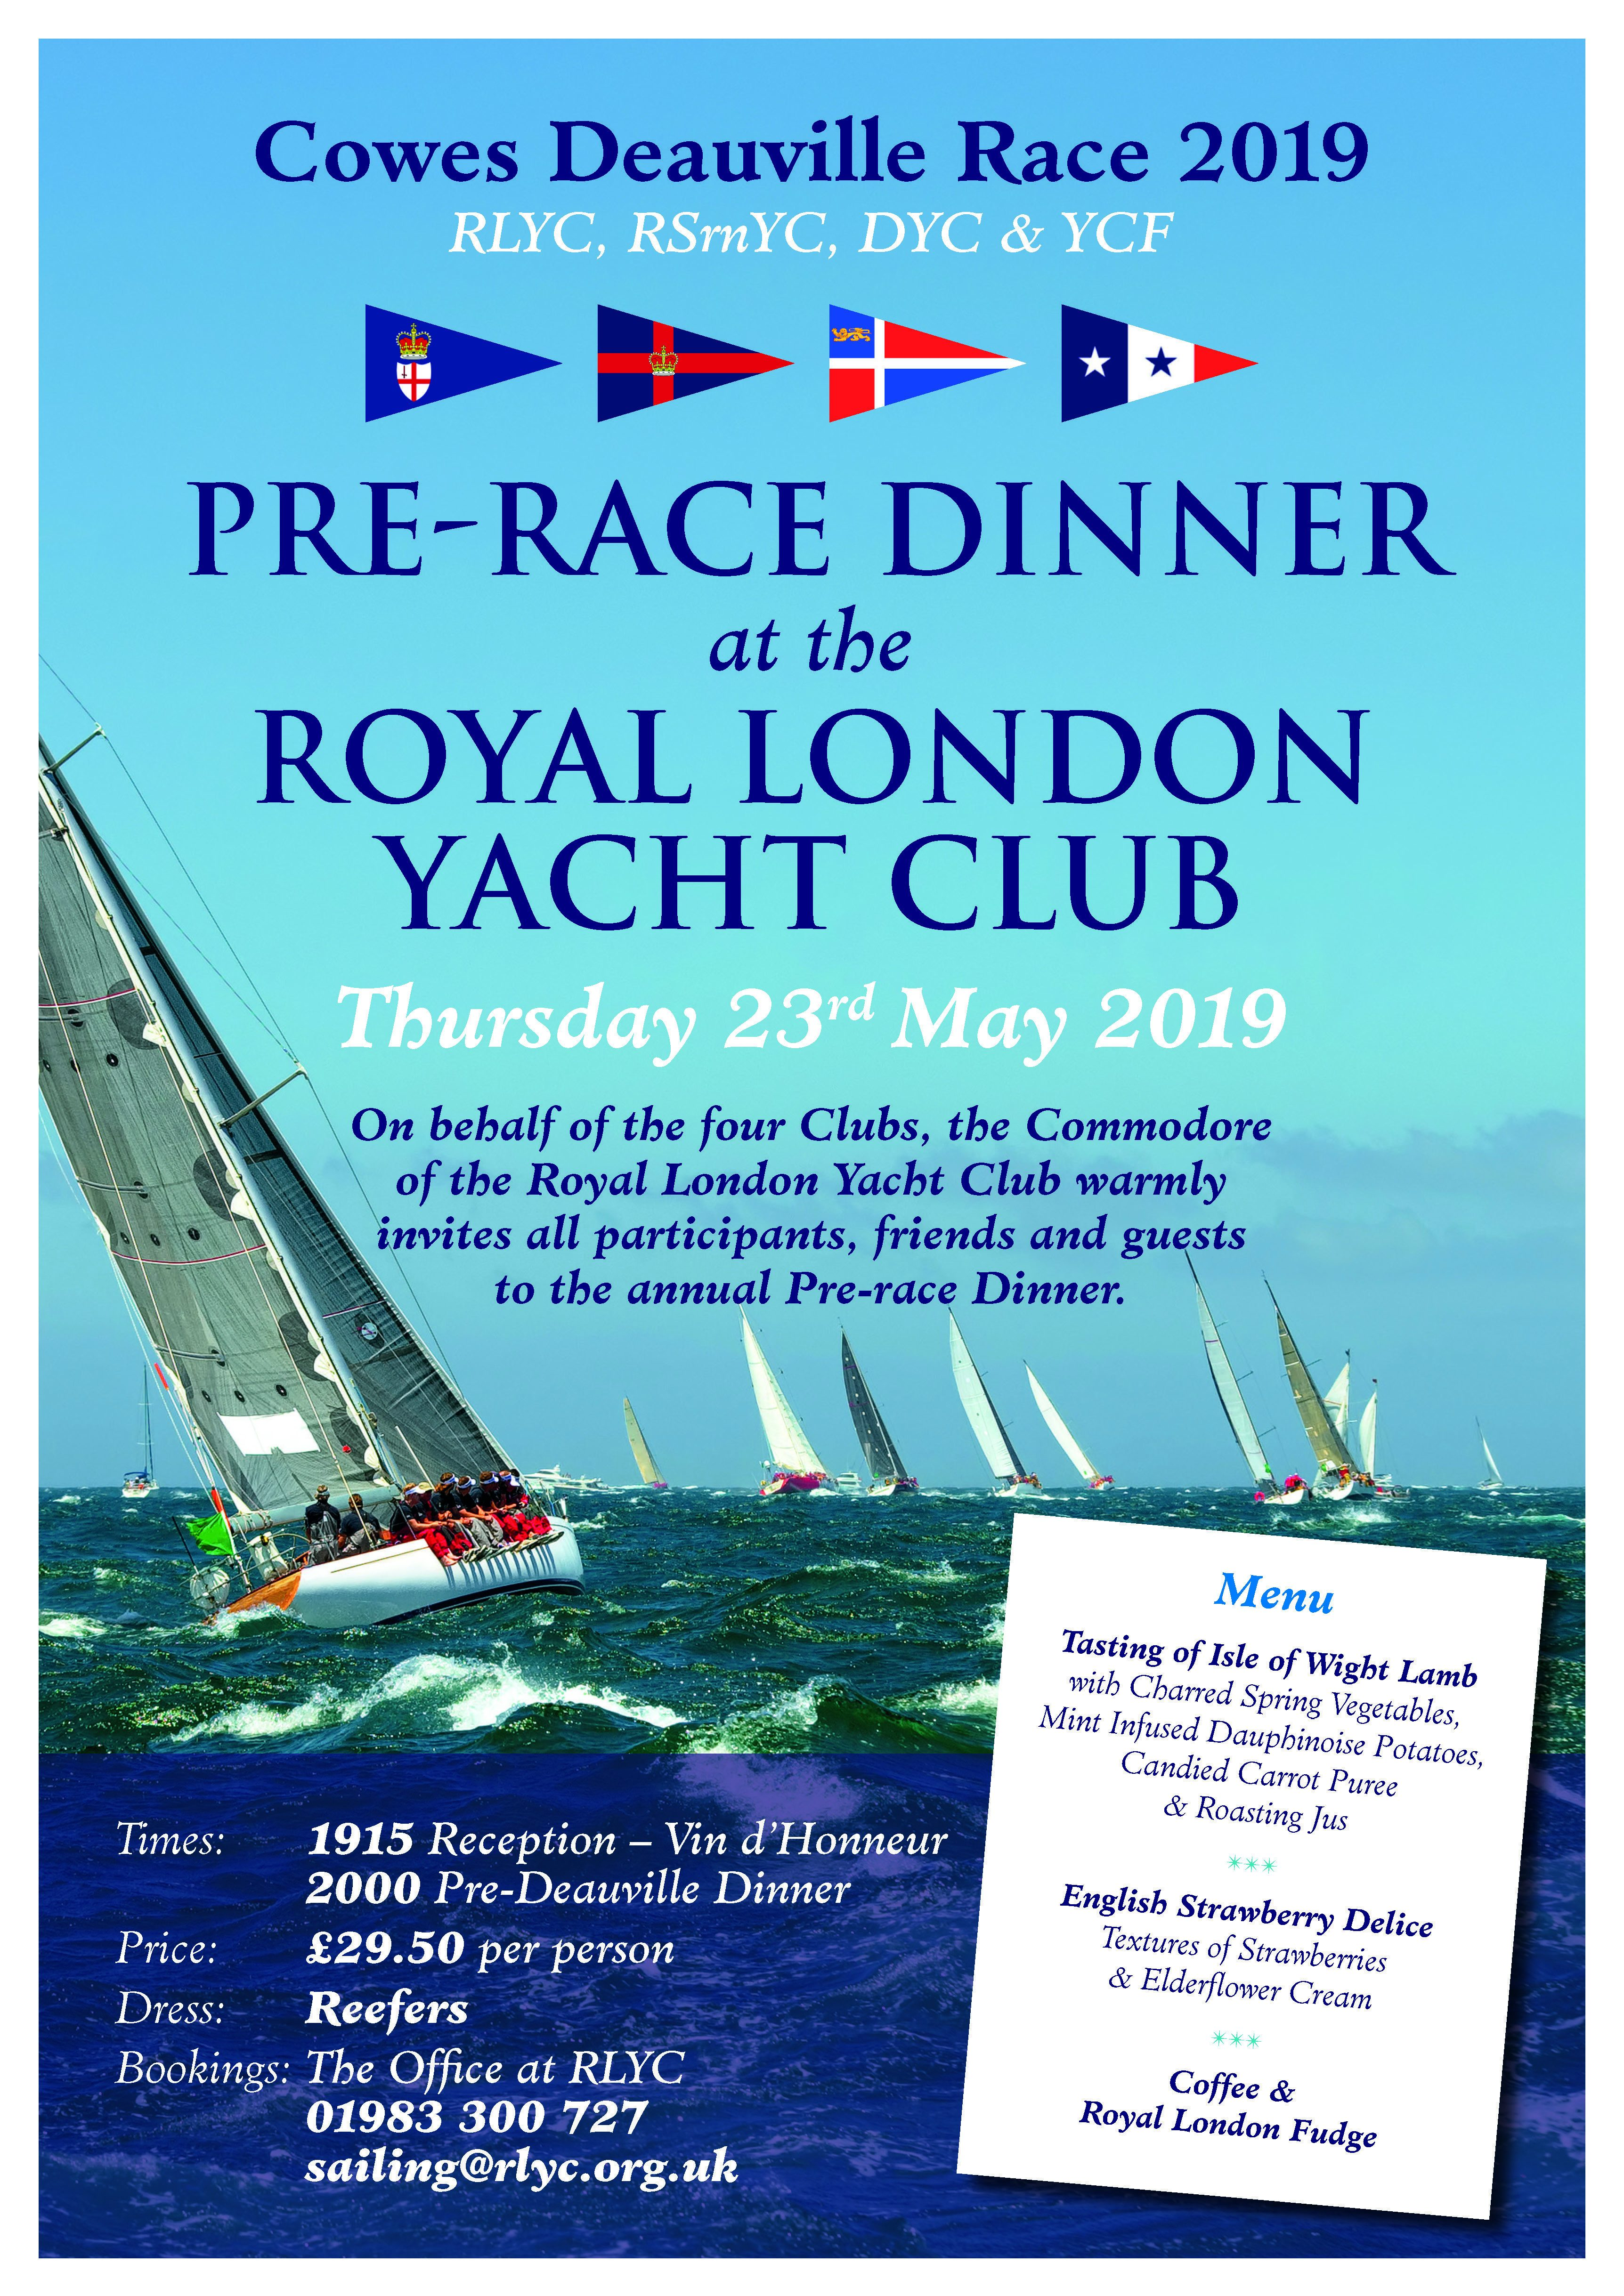 Rlyc Cowes Deauville Pre Race Dinner 23Rd May 2019